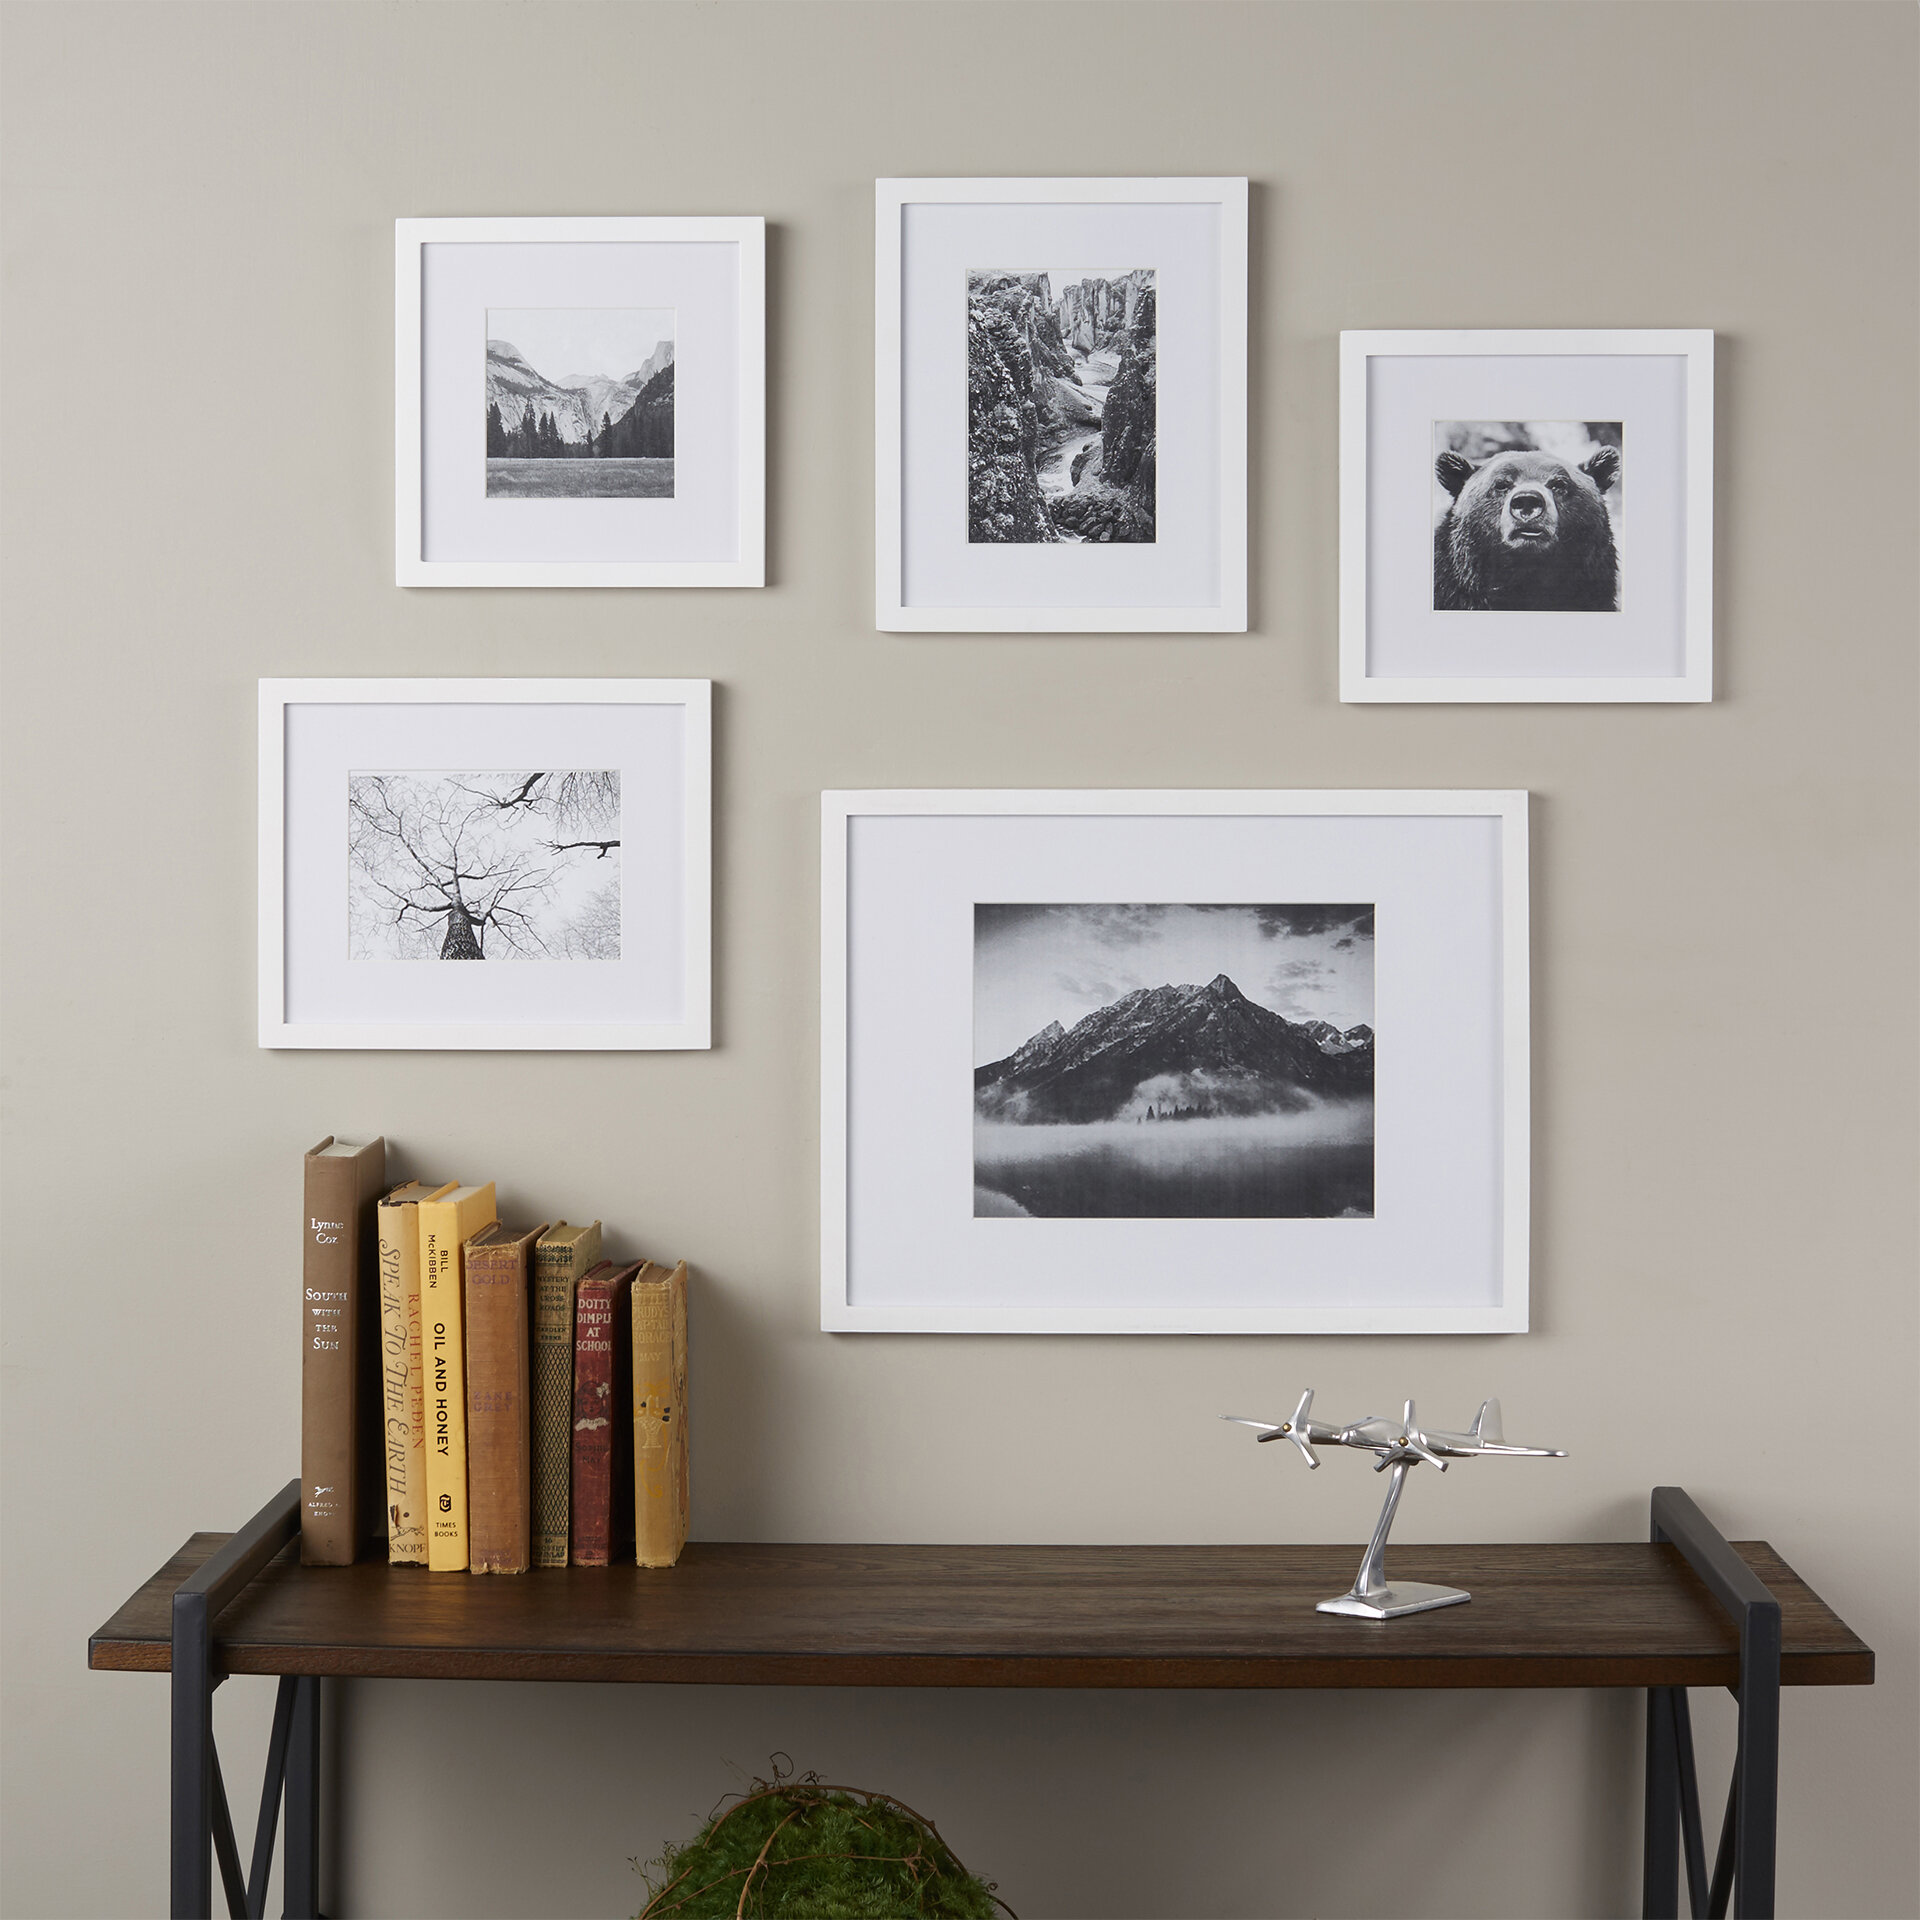 Wayfair Basics™ Wayfair Basics 5 Piece Picture Frame Set & Reviews ...